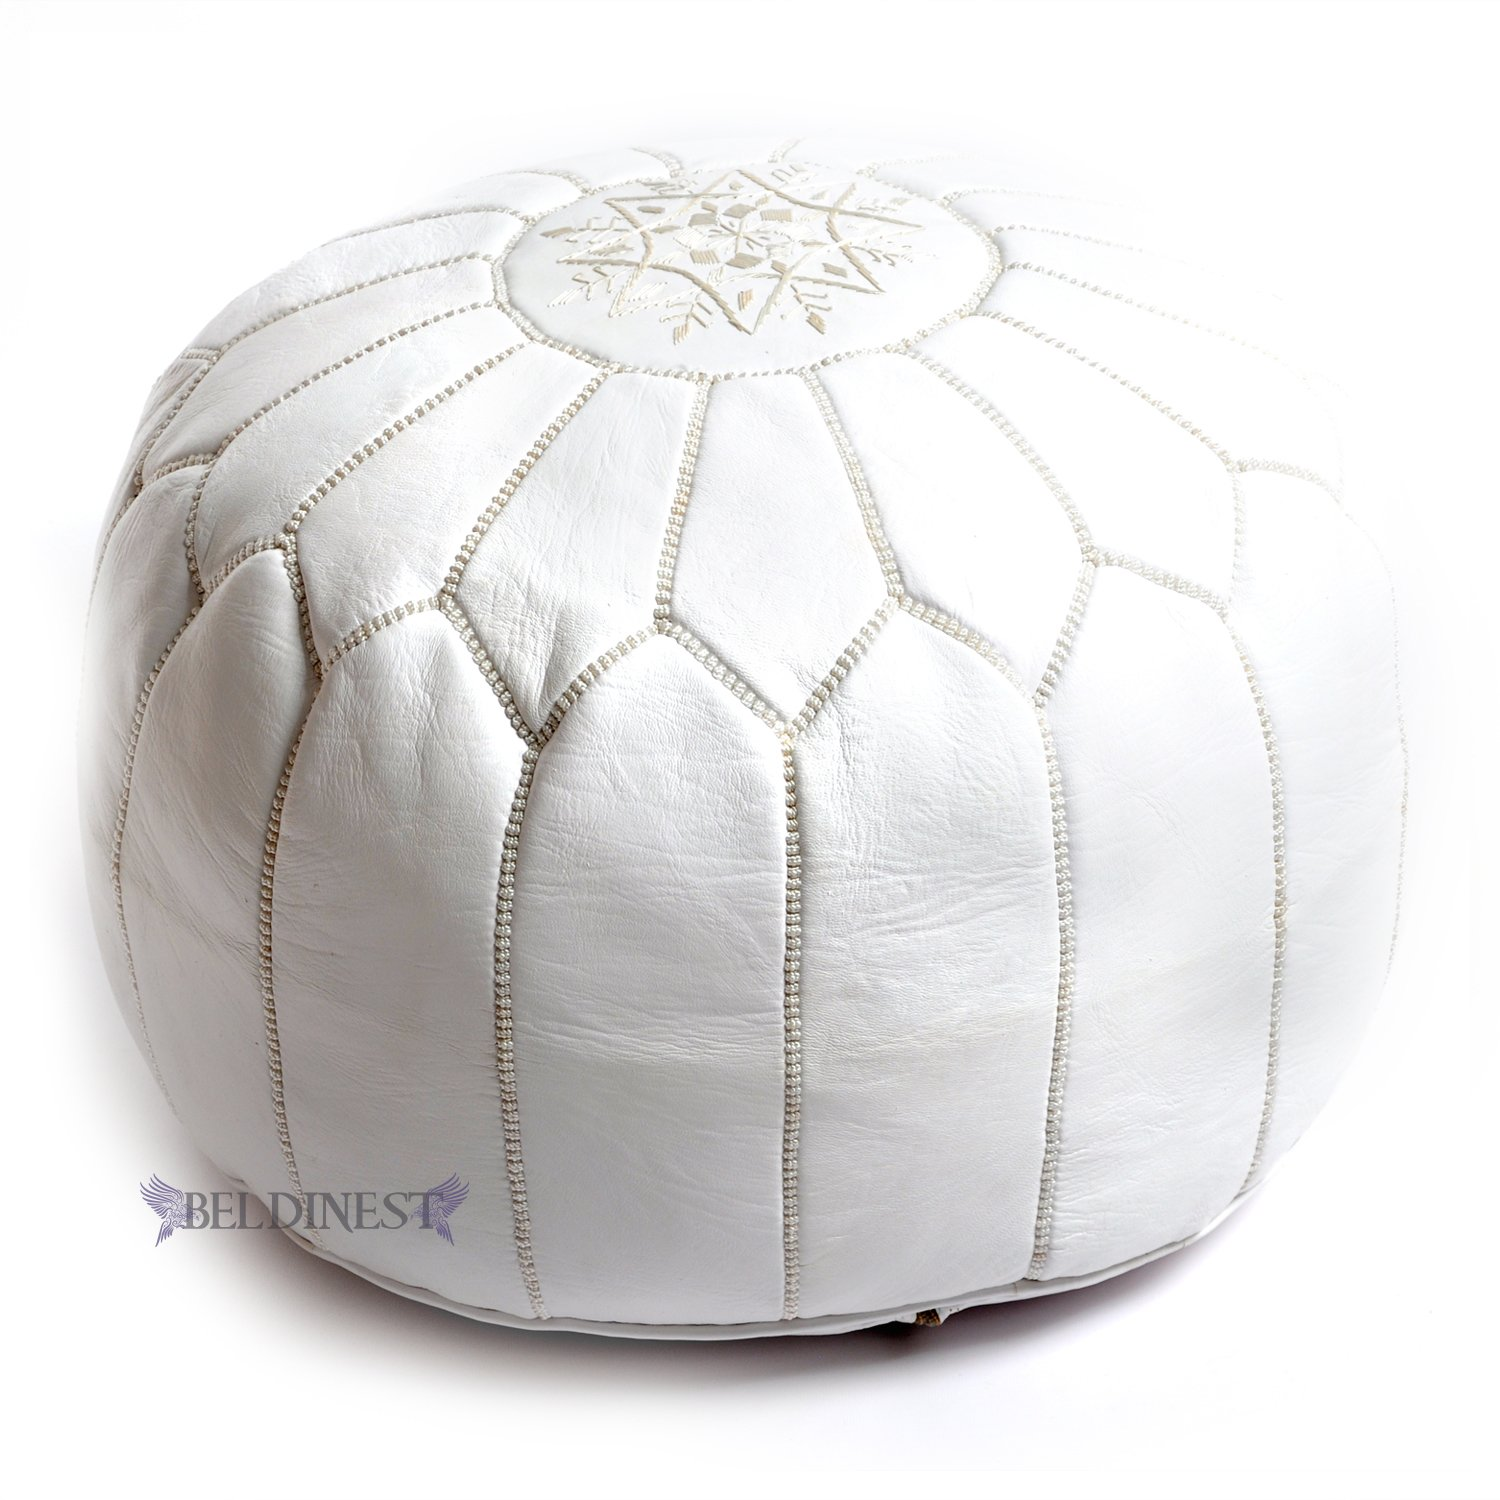 competitive price 4ce42 d7762 BeldiNest Moroccan Pouf Ottoman Leather Pouf Round Ottoman Leather Pouf,  Perfect Home Ottoman Footrest | White Leather Pouf